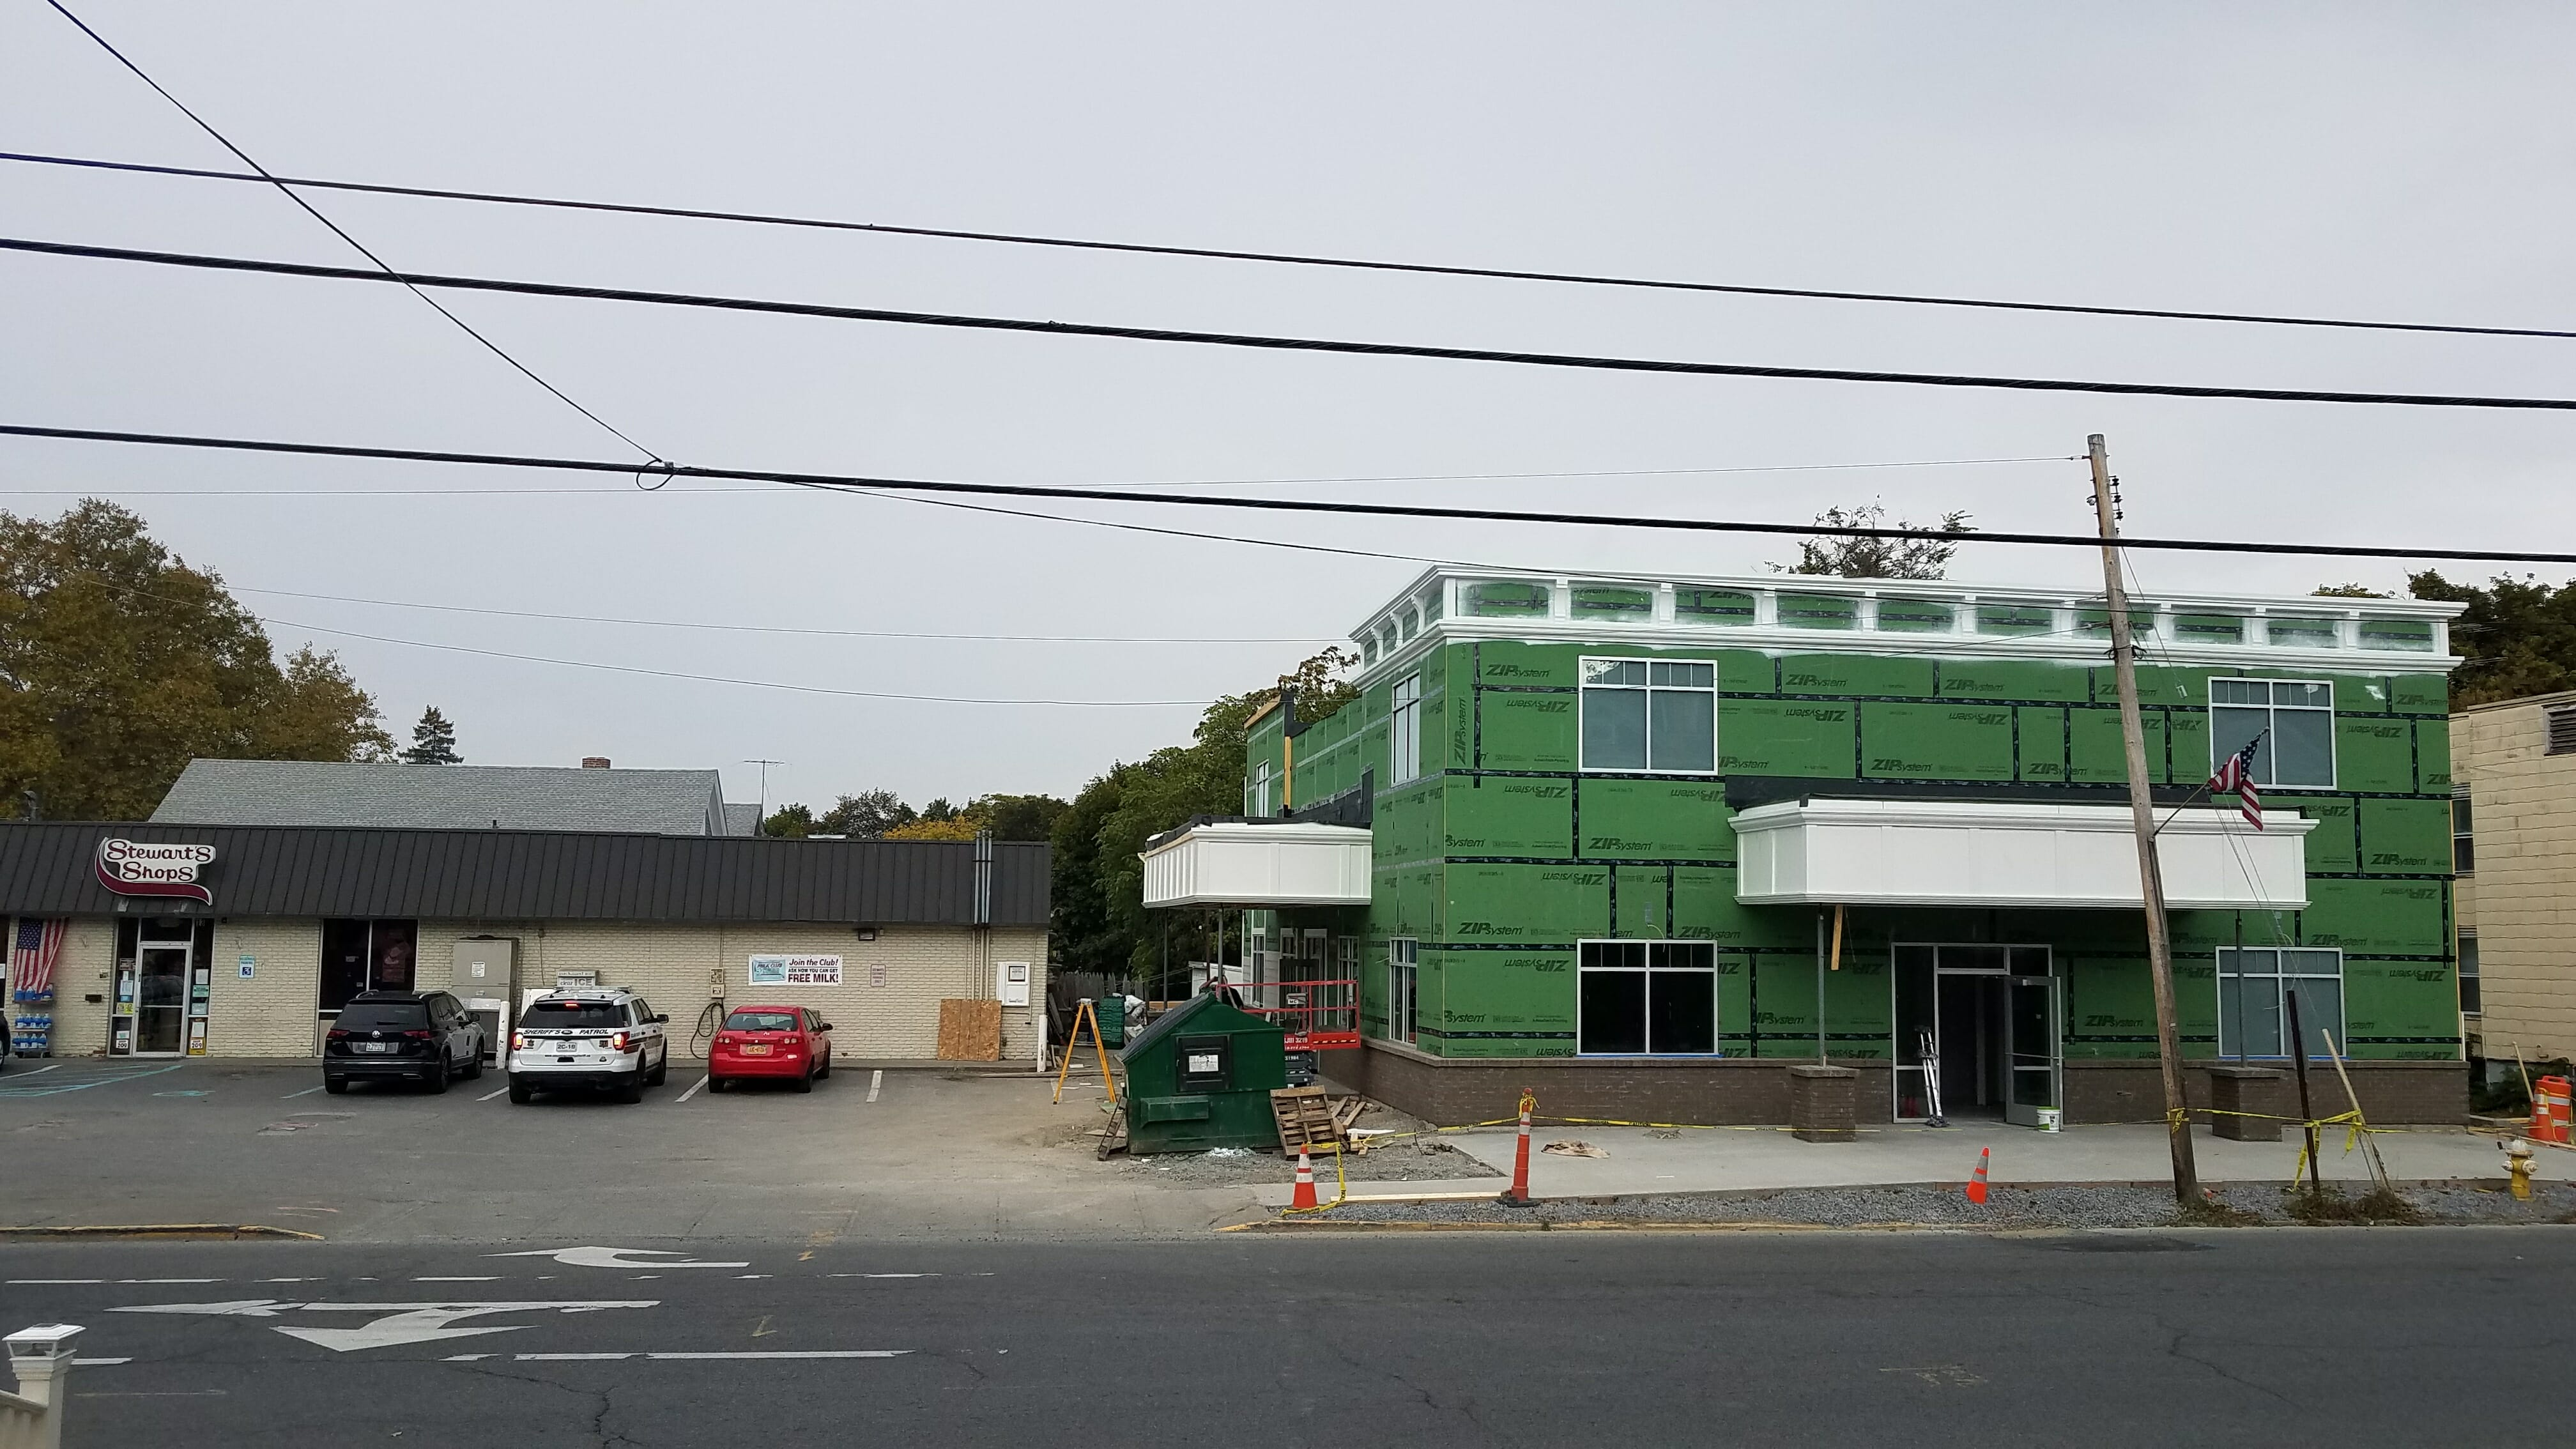 new Stewart's shop next to existing store